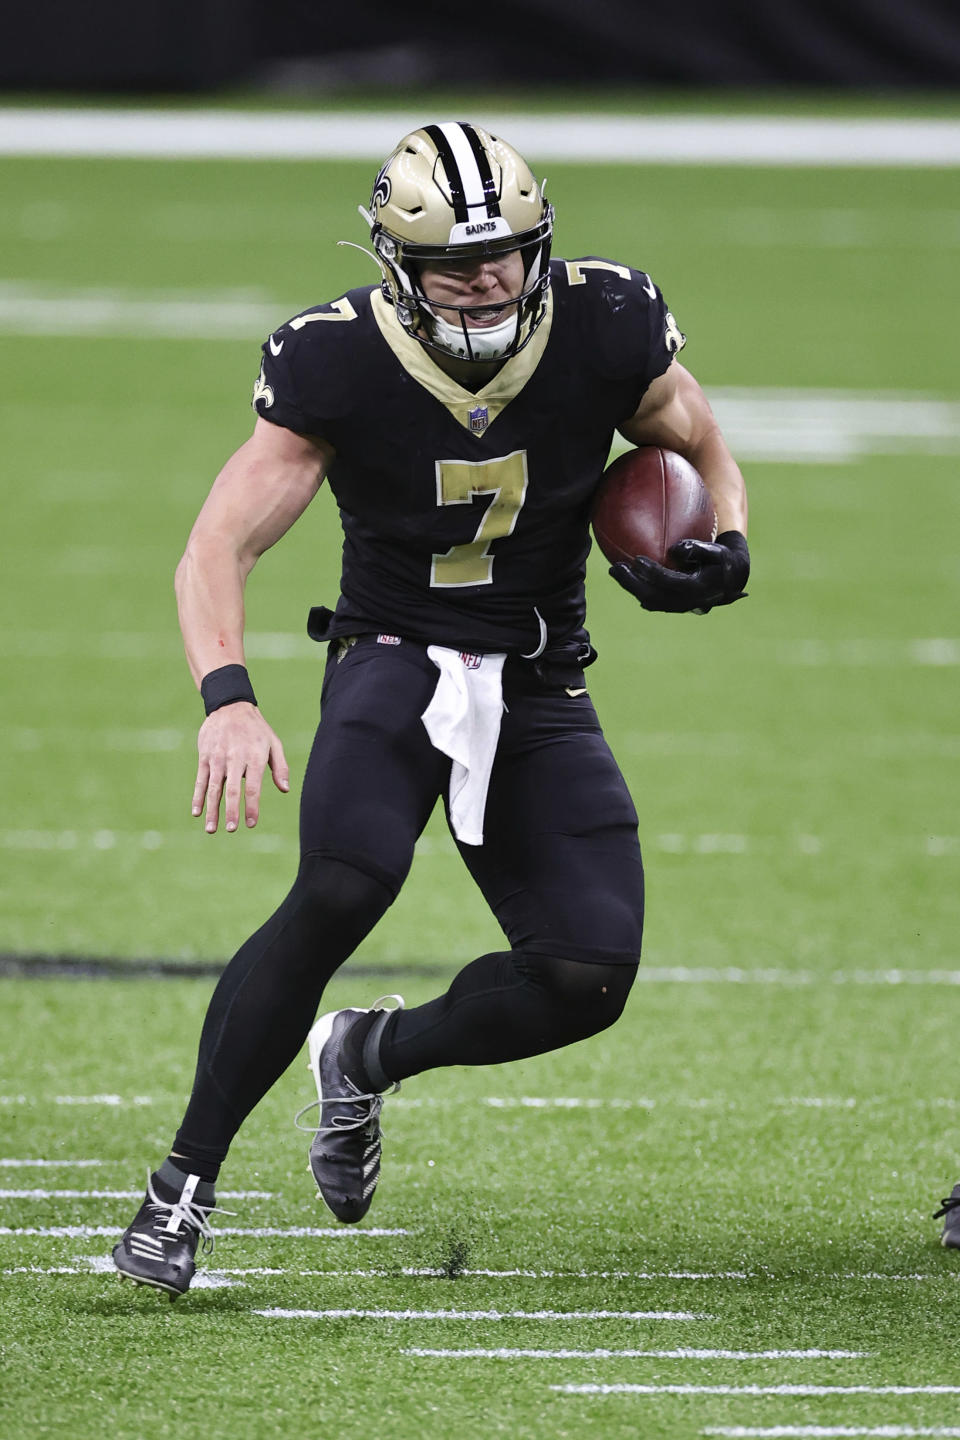 New Orleans Saints quarterback Taysom Hill (7) carries the ball during an NFL game against the San Francisco 49ers, Sunday, Nov. 15, 2020 in New Orleans. The Saints defeated the 49ers 27-13. (Margaret Bowles via AP)